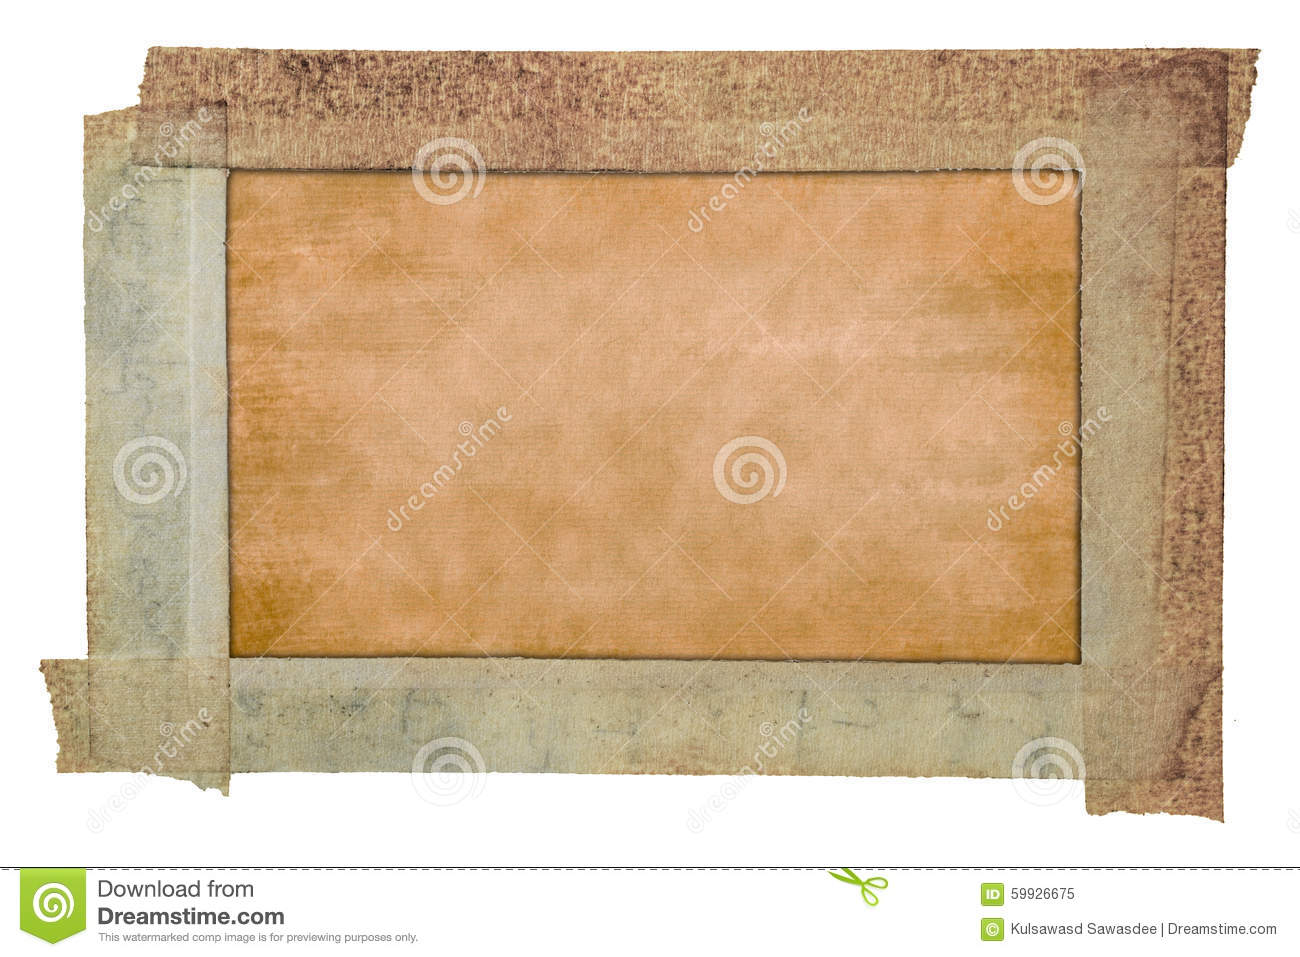 Old paper tape frame, Vintage paper texture background